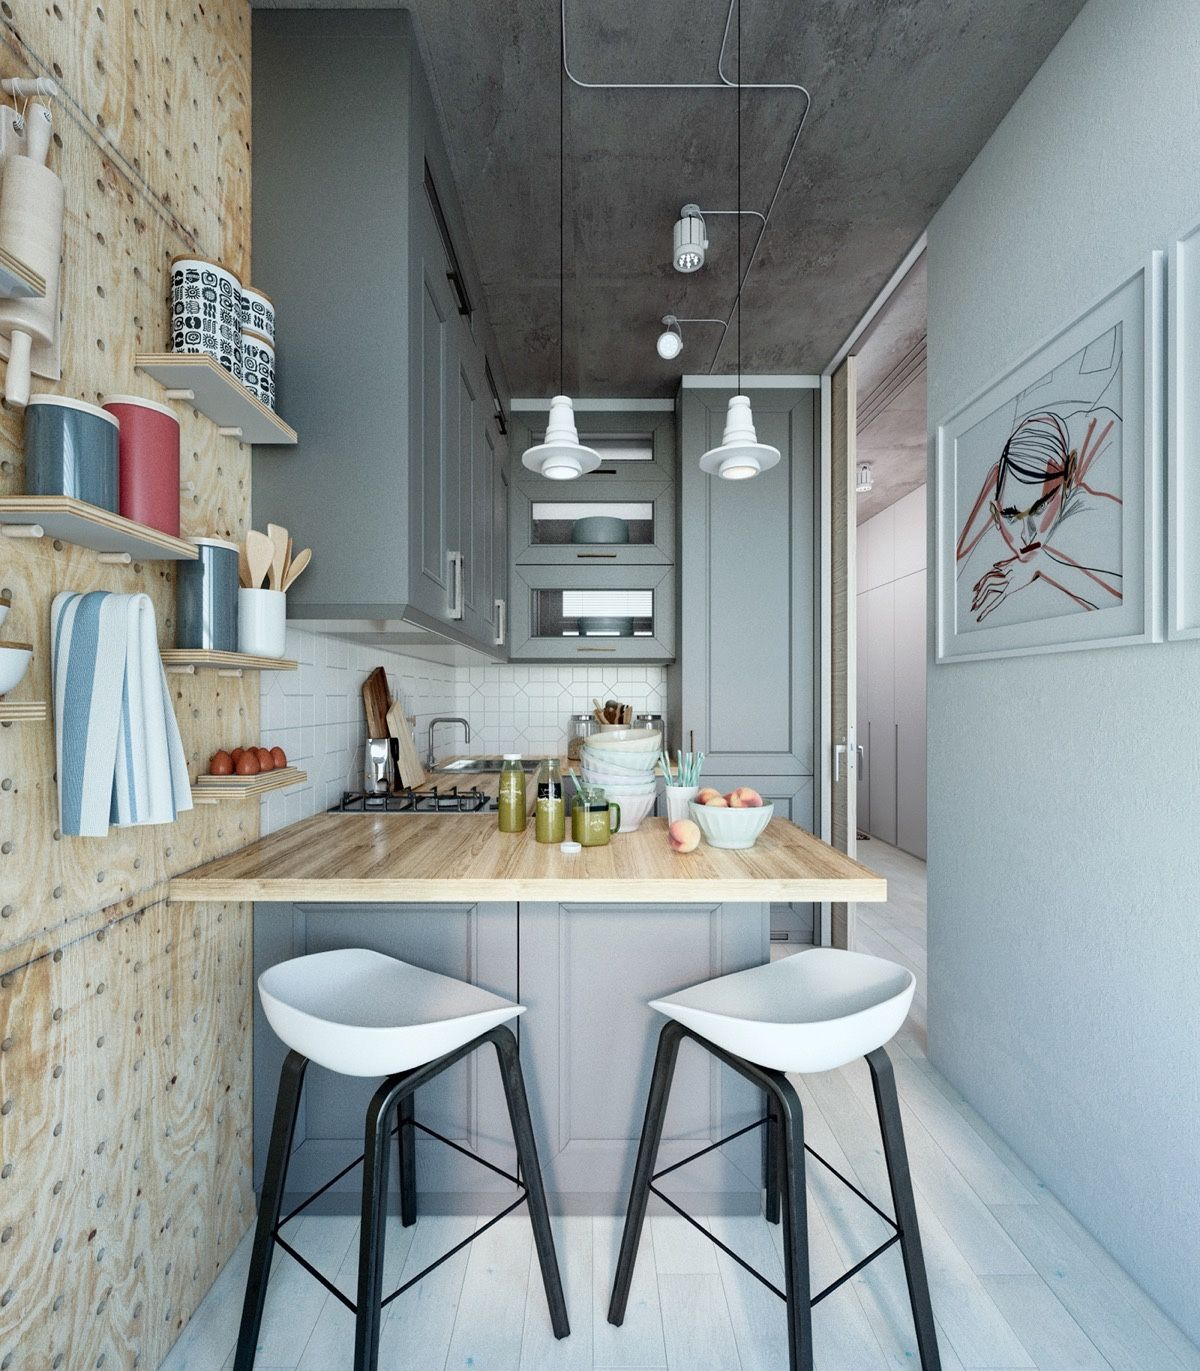 Small Apartment Design With Scandinavian Style That Looks Charming ...